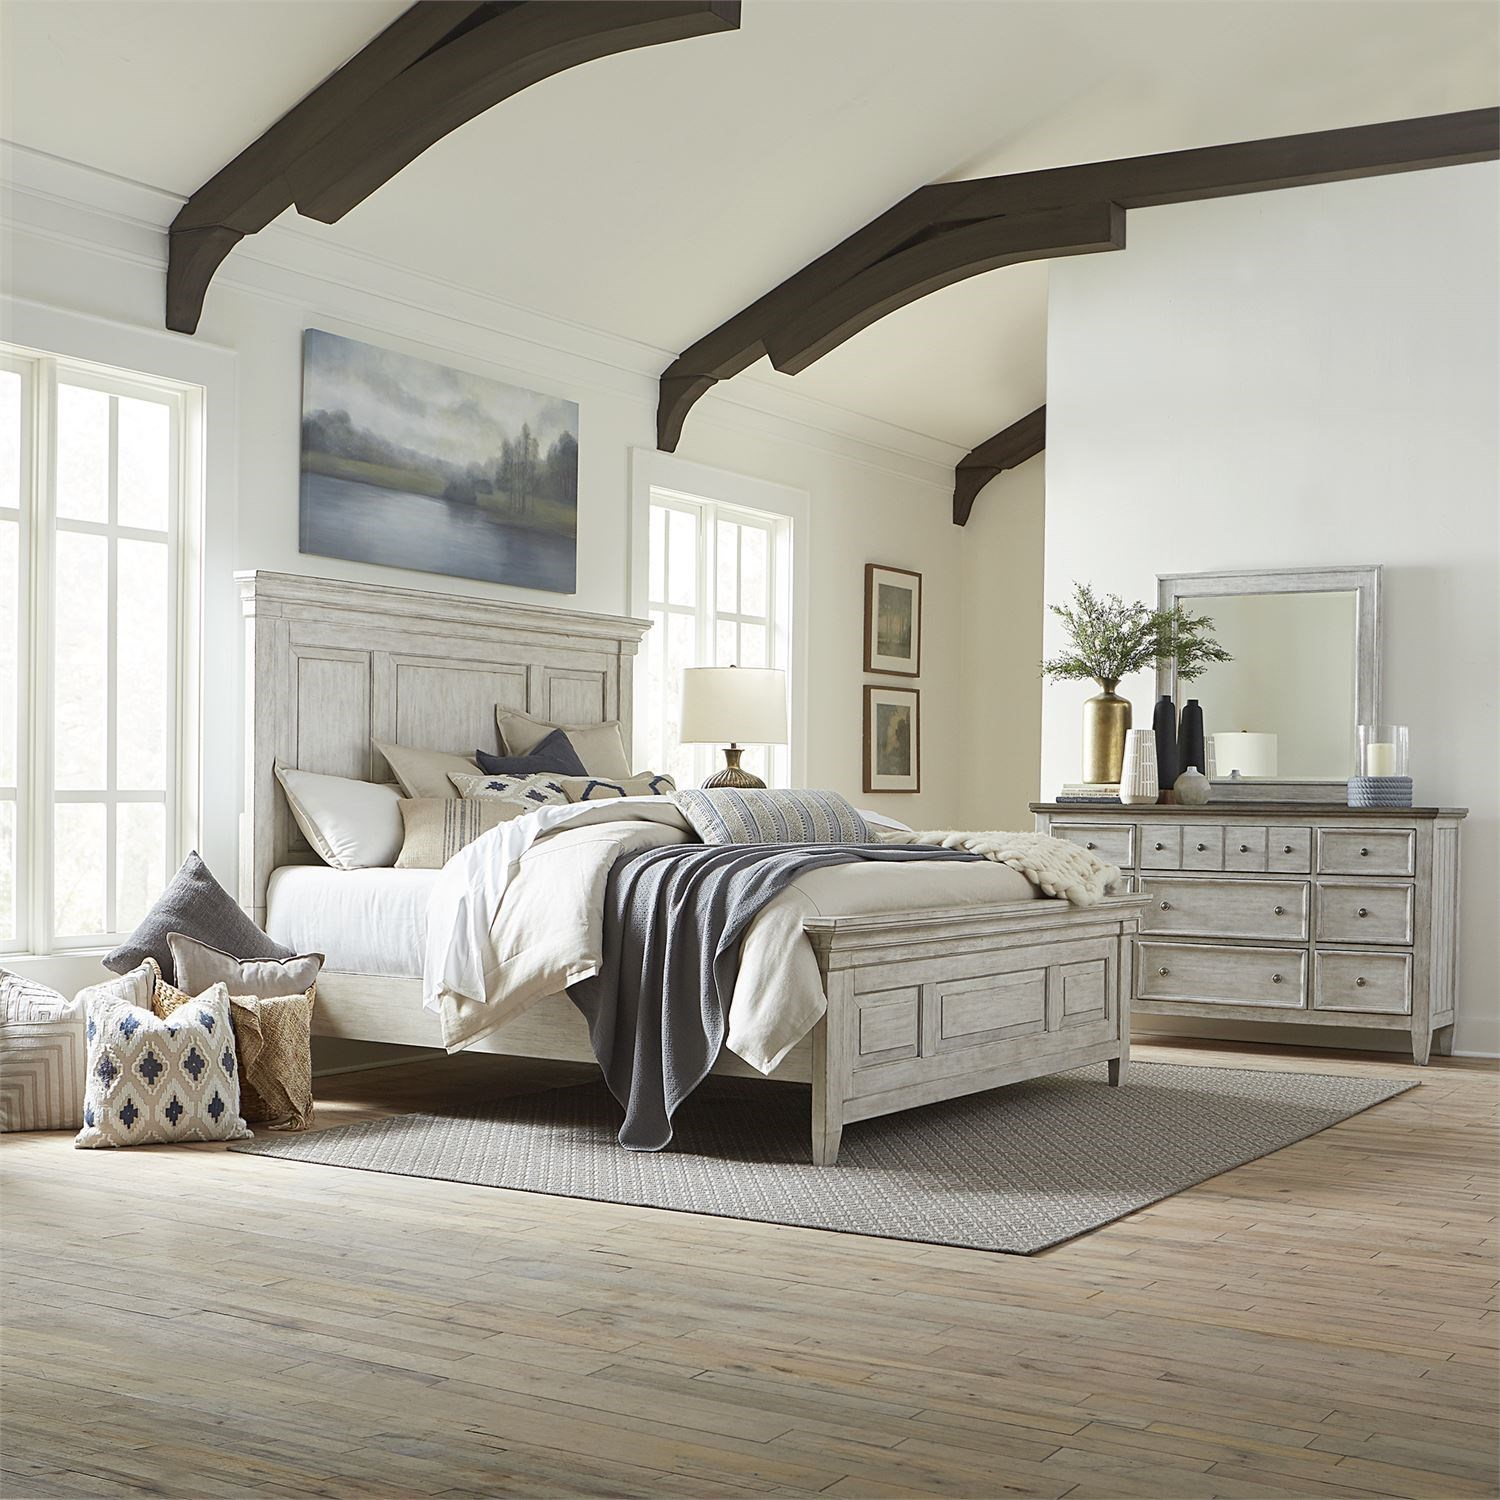 Heartland Queen Bedroom Group by Liberty Furniture at Zak's Home